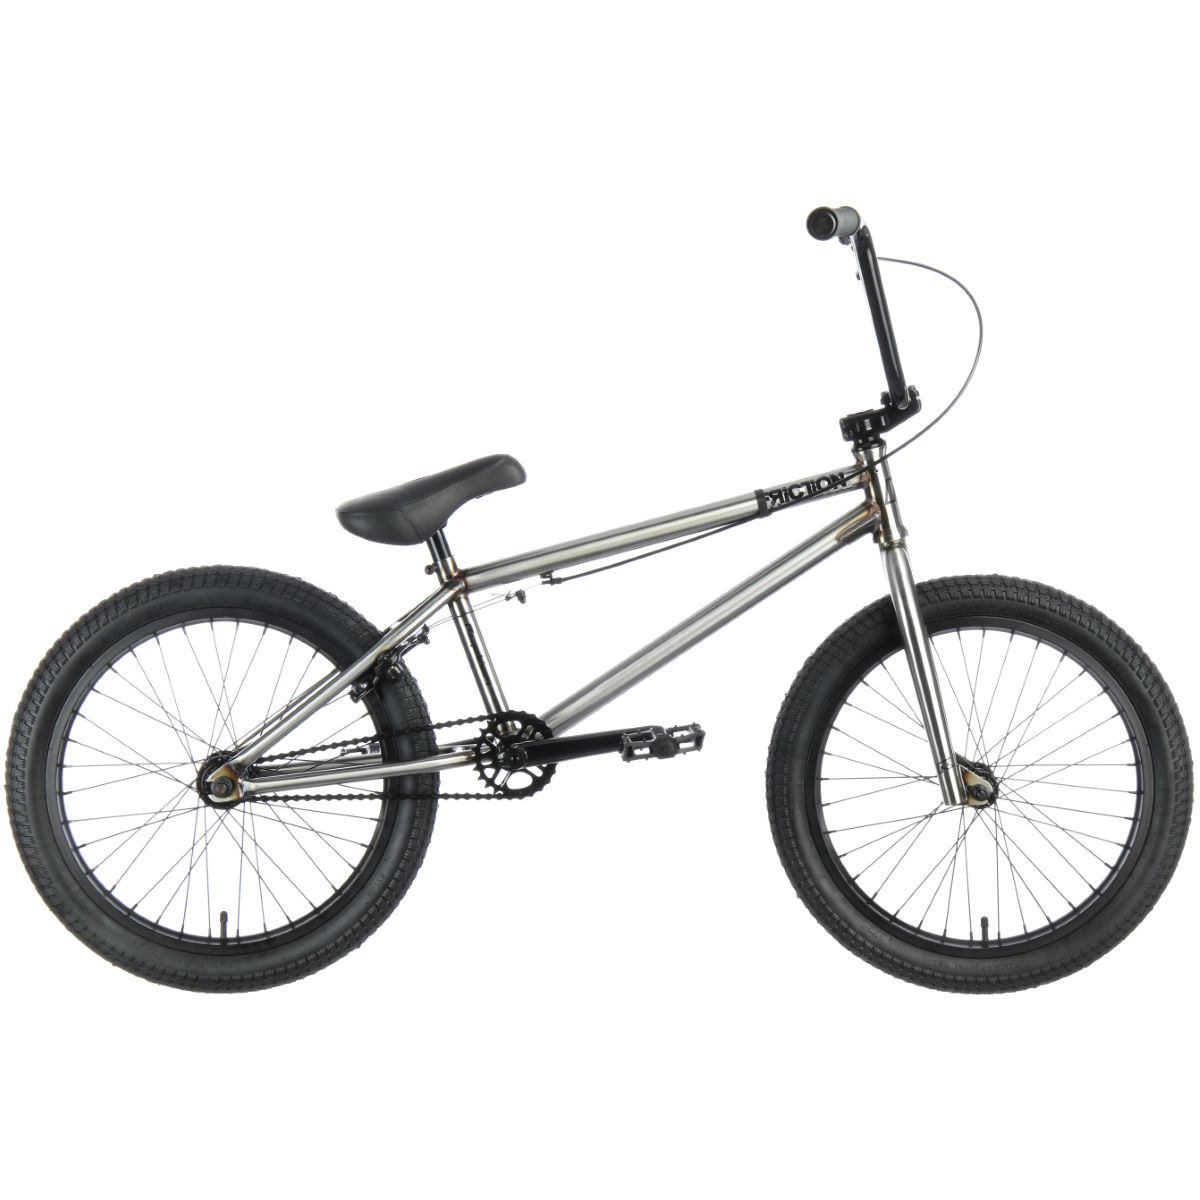 "Ruption Friction BMX Bike (2019) Copper 20"" - Bicicletas de BMX Freestyle"